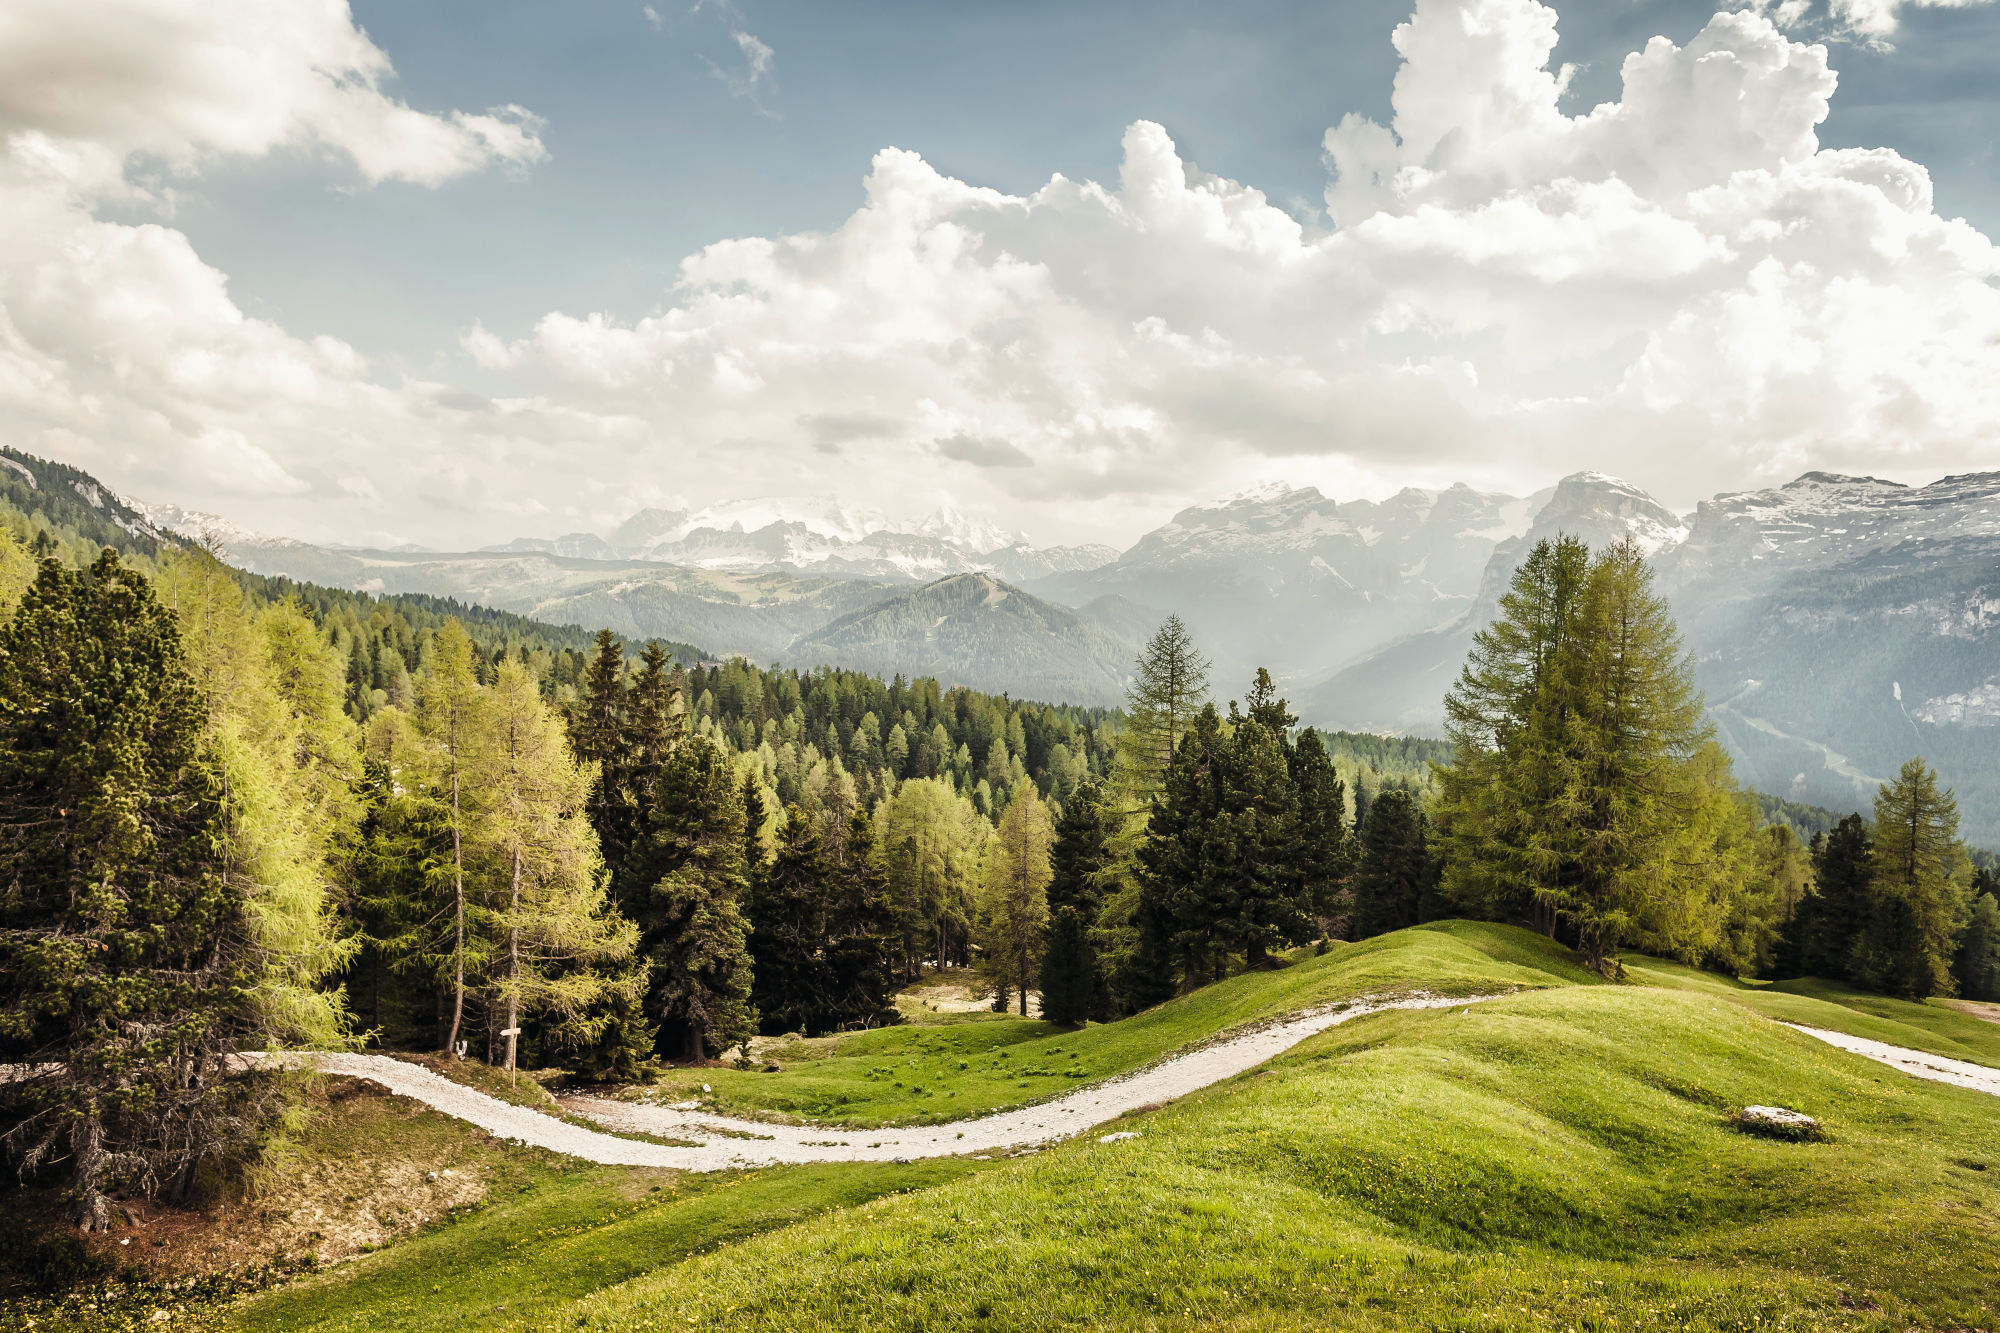 AP­PRE­CIA­TING THE GIFTS OF NA­TU­RE Landscape Alps